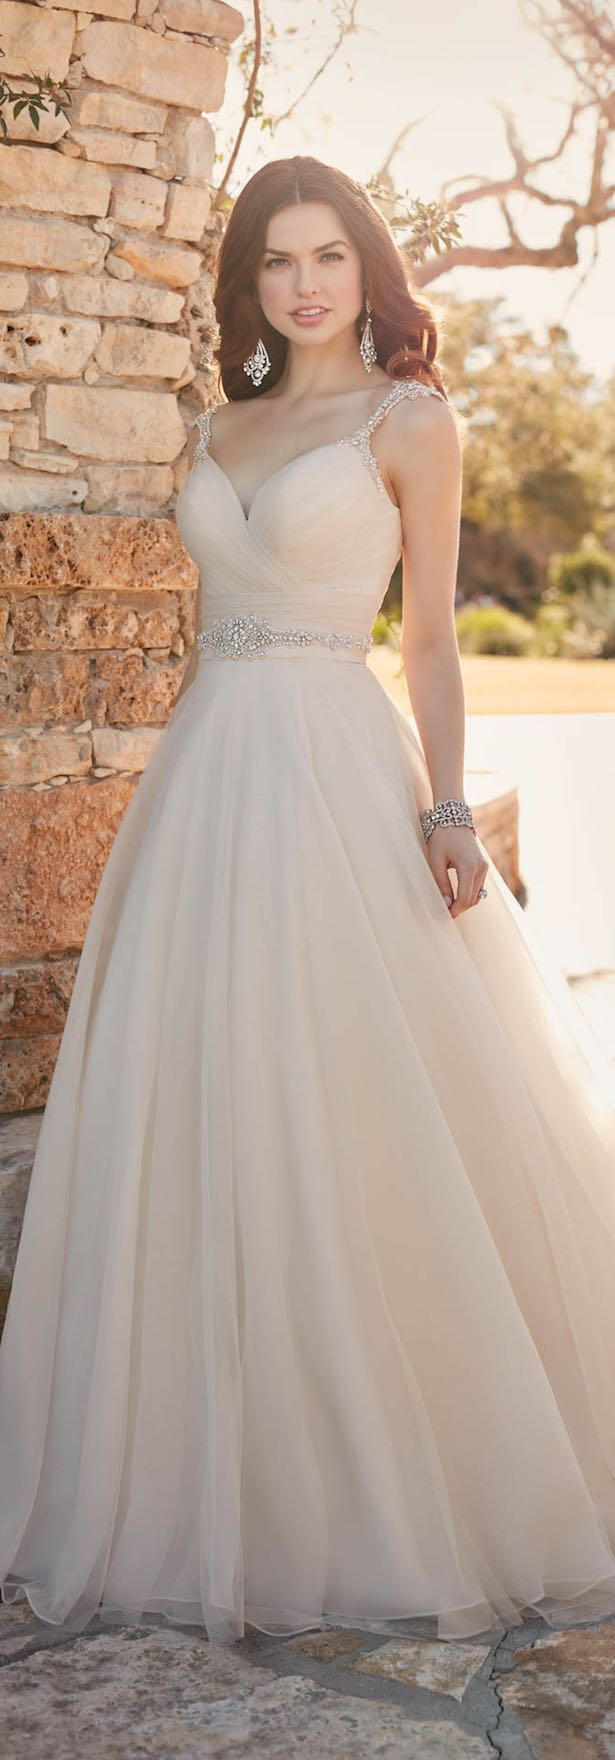 Essense of Australia Fall 2016 Wedding Dress